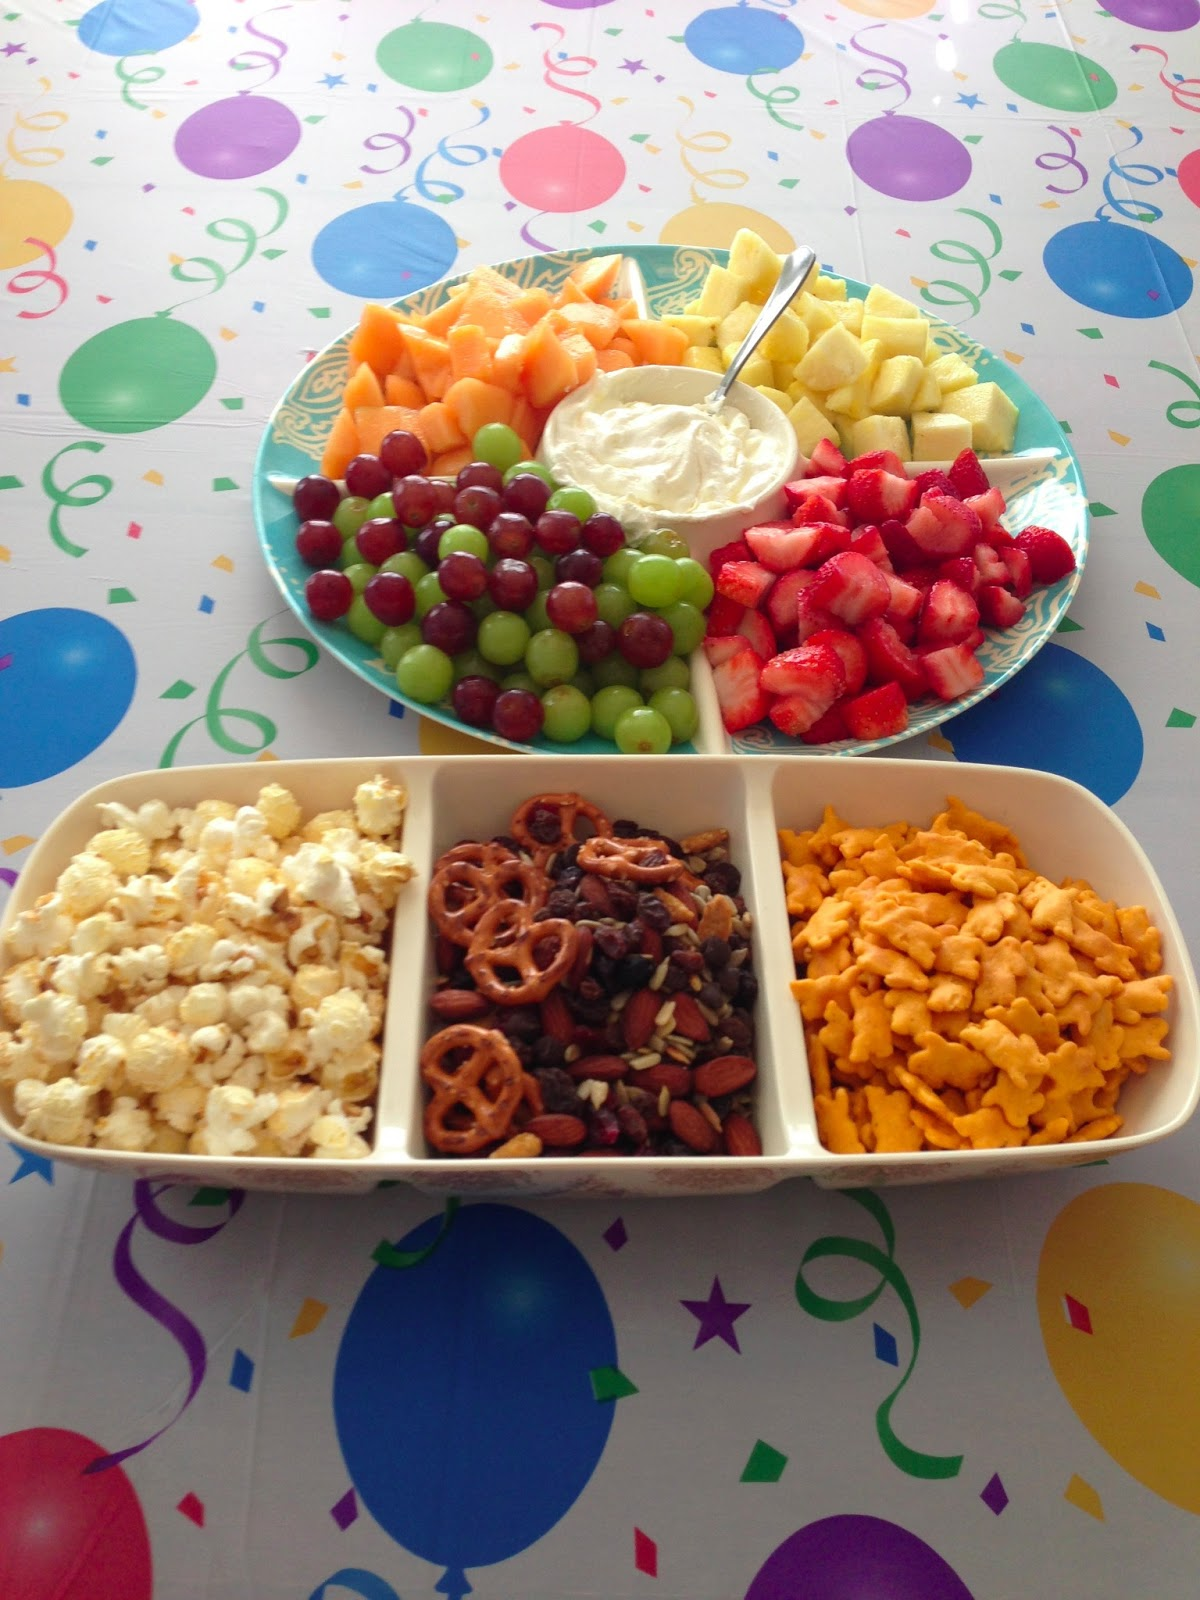 Free Party Food Cliparts, Download Free Clip Art, Free ...   Adults Clipart Party Snacks